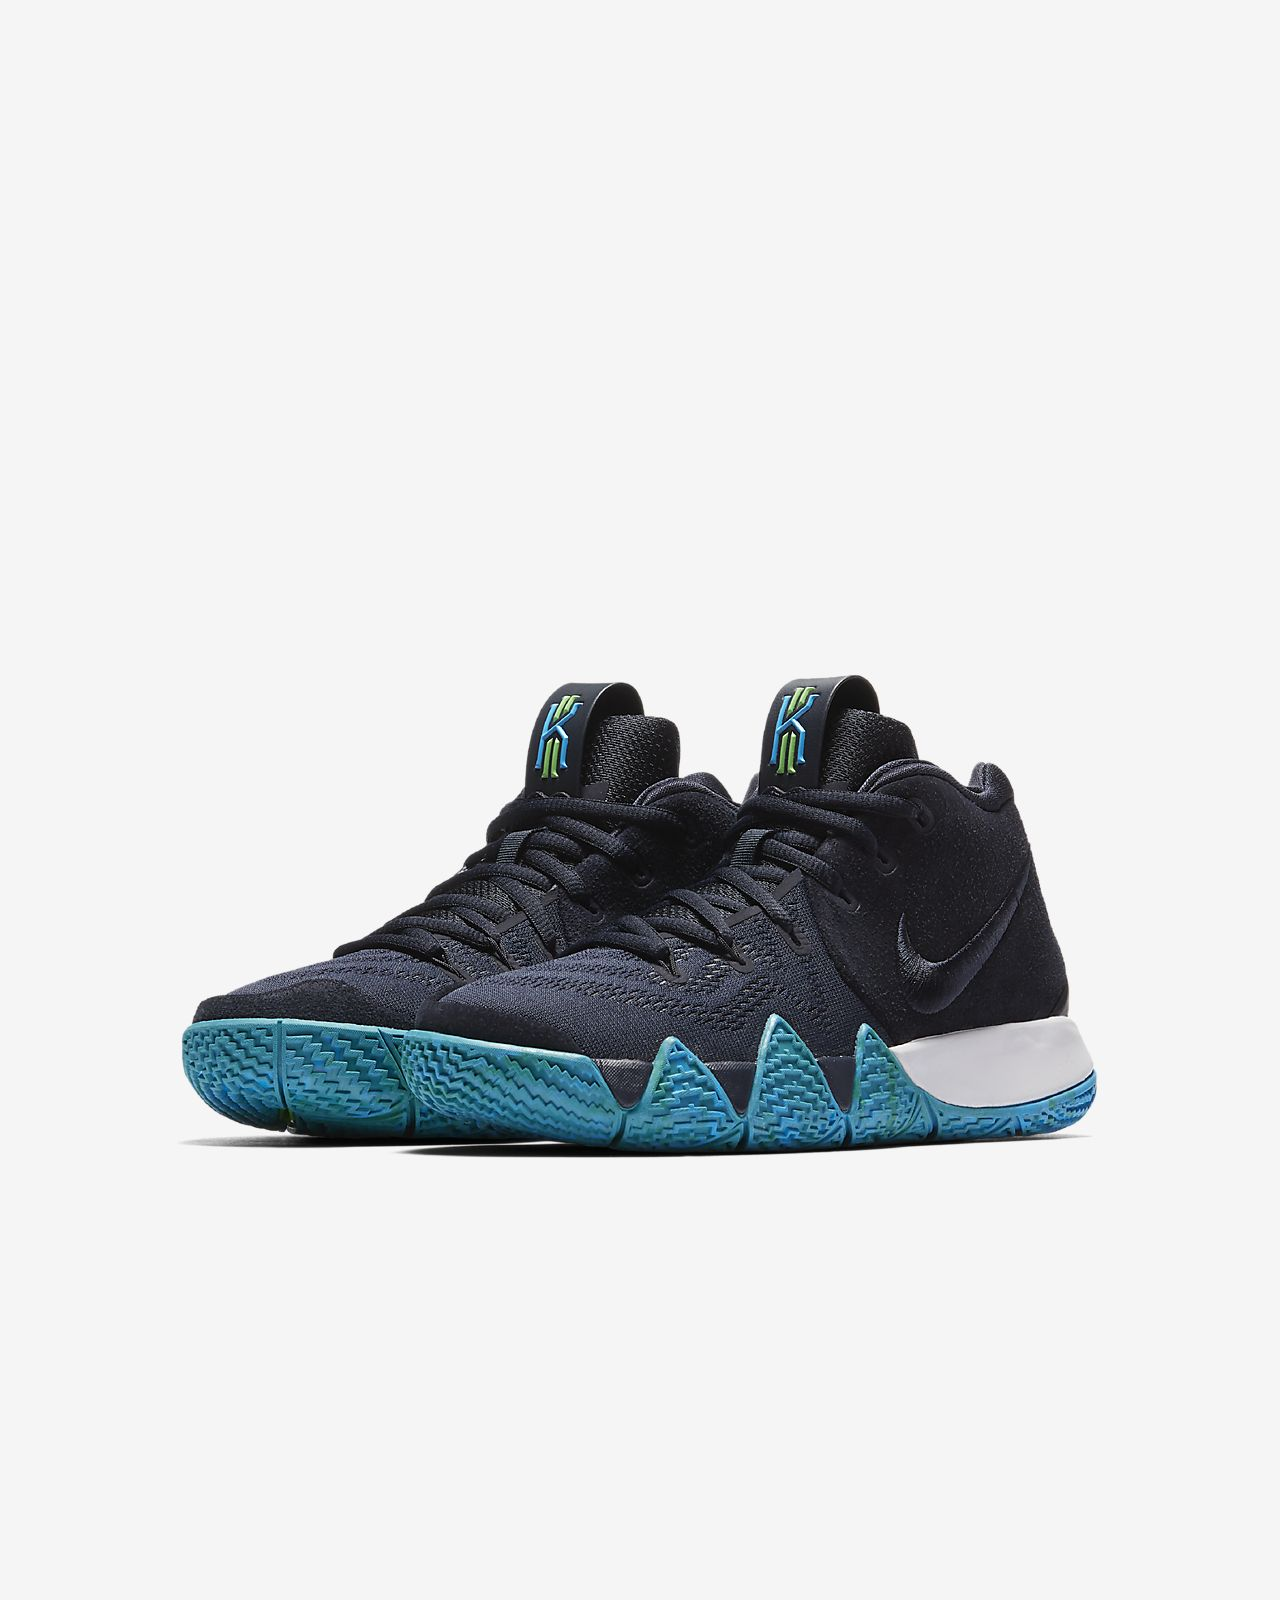 ... Kyrie 4 Older Kids' Basketball Shoe